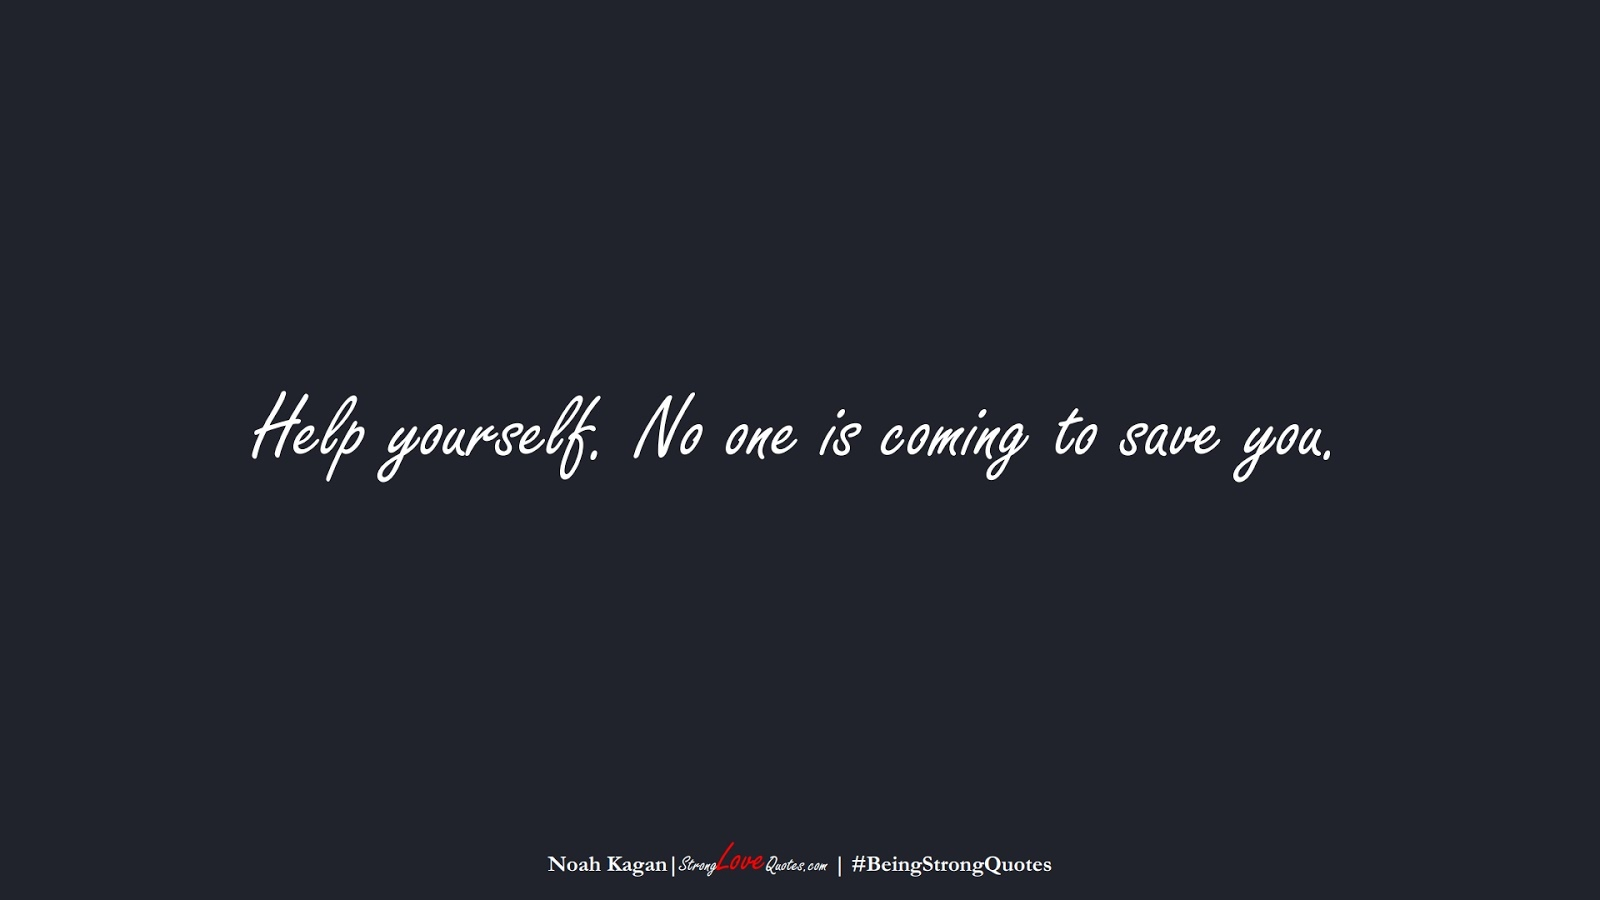 Help yourself. No one is coming to save you. (Noah Kagan);  #BeingStrongQuotes